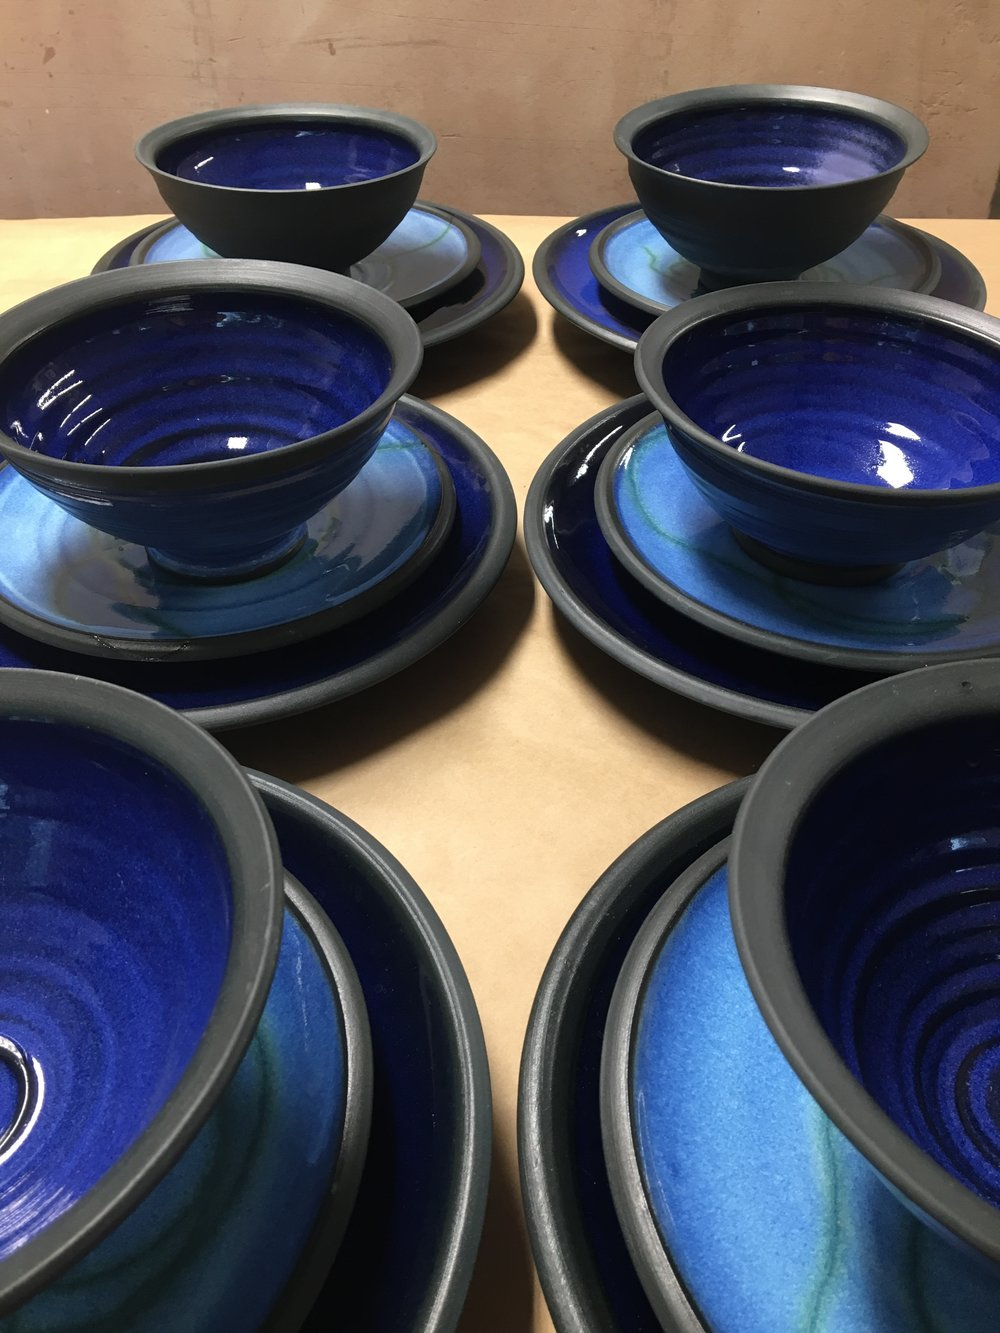 & TABLEWARE and PLACE SETTINGS u2014 Lisa Knaus Pottery